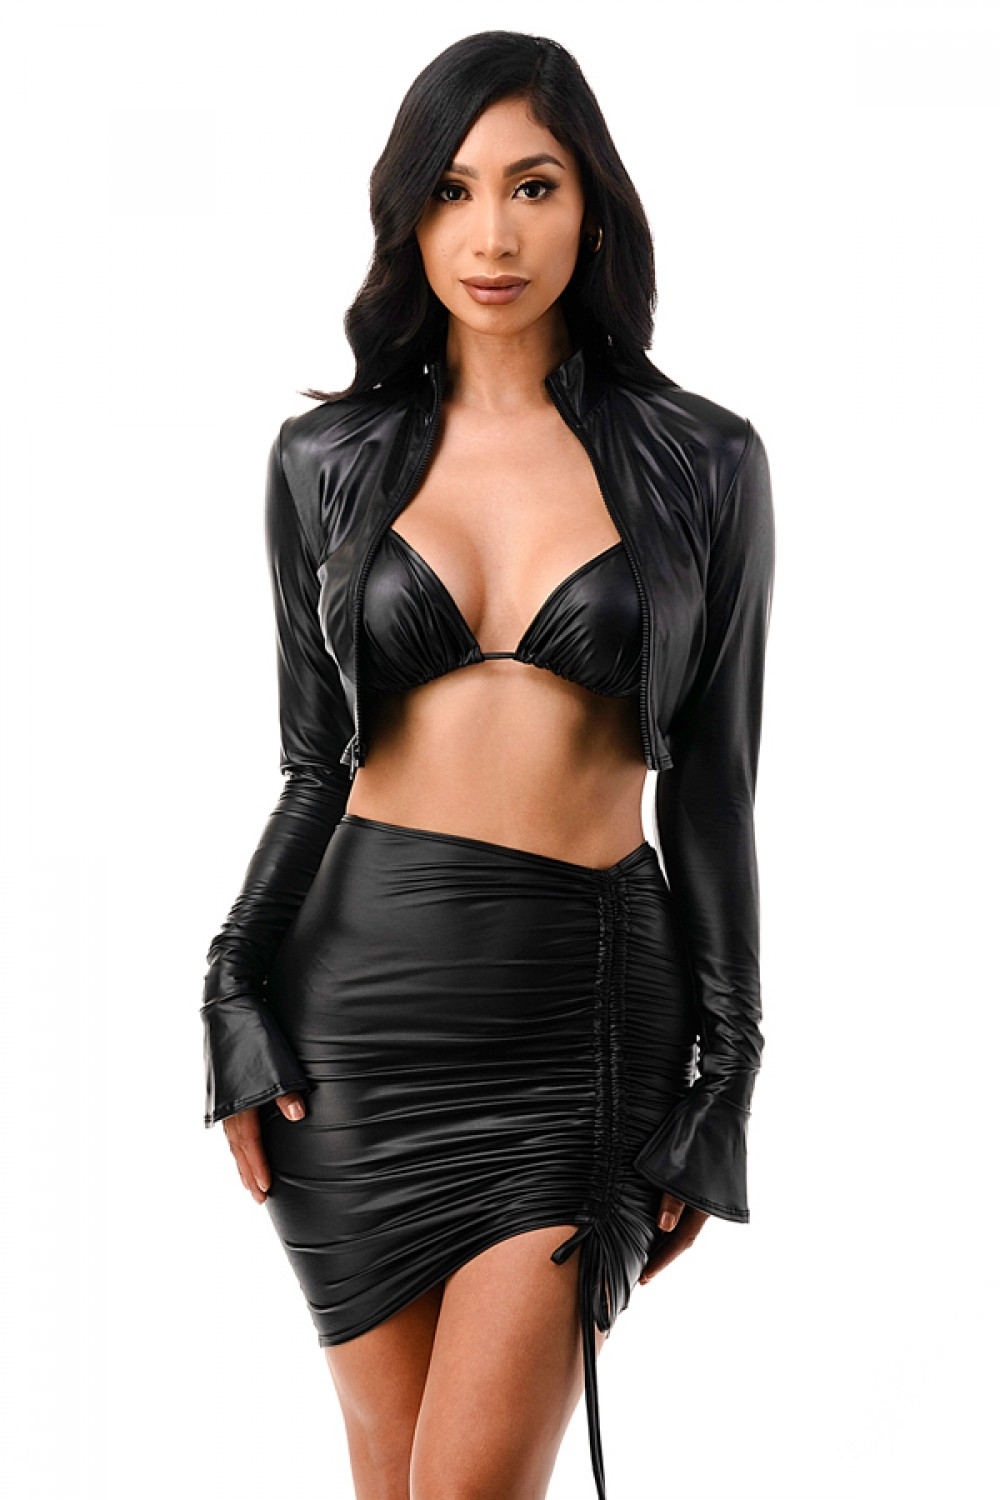 5TH4089<br/>Faux Leather Zip Up Cropped Long Sleeve Jacket, Bra Top And Ruched Mini Skirt 3 Pcs Set